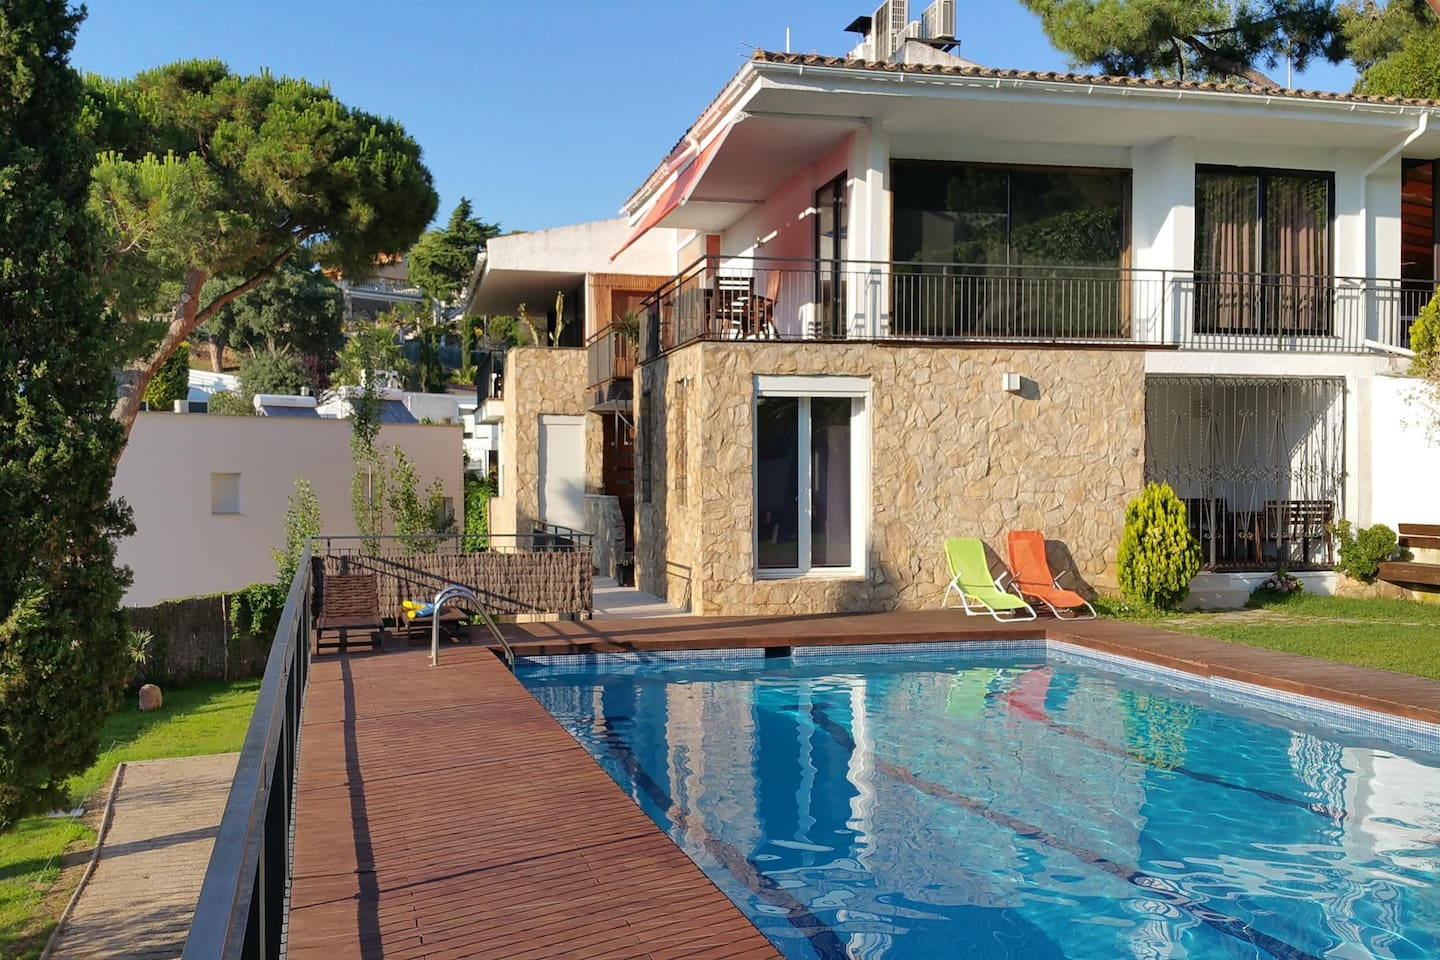 4 houses in 1, 700m beach, SPA